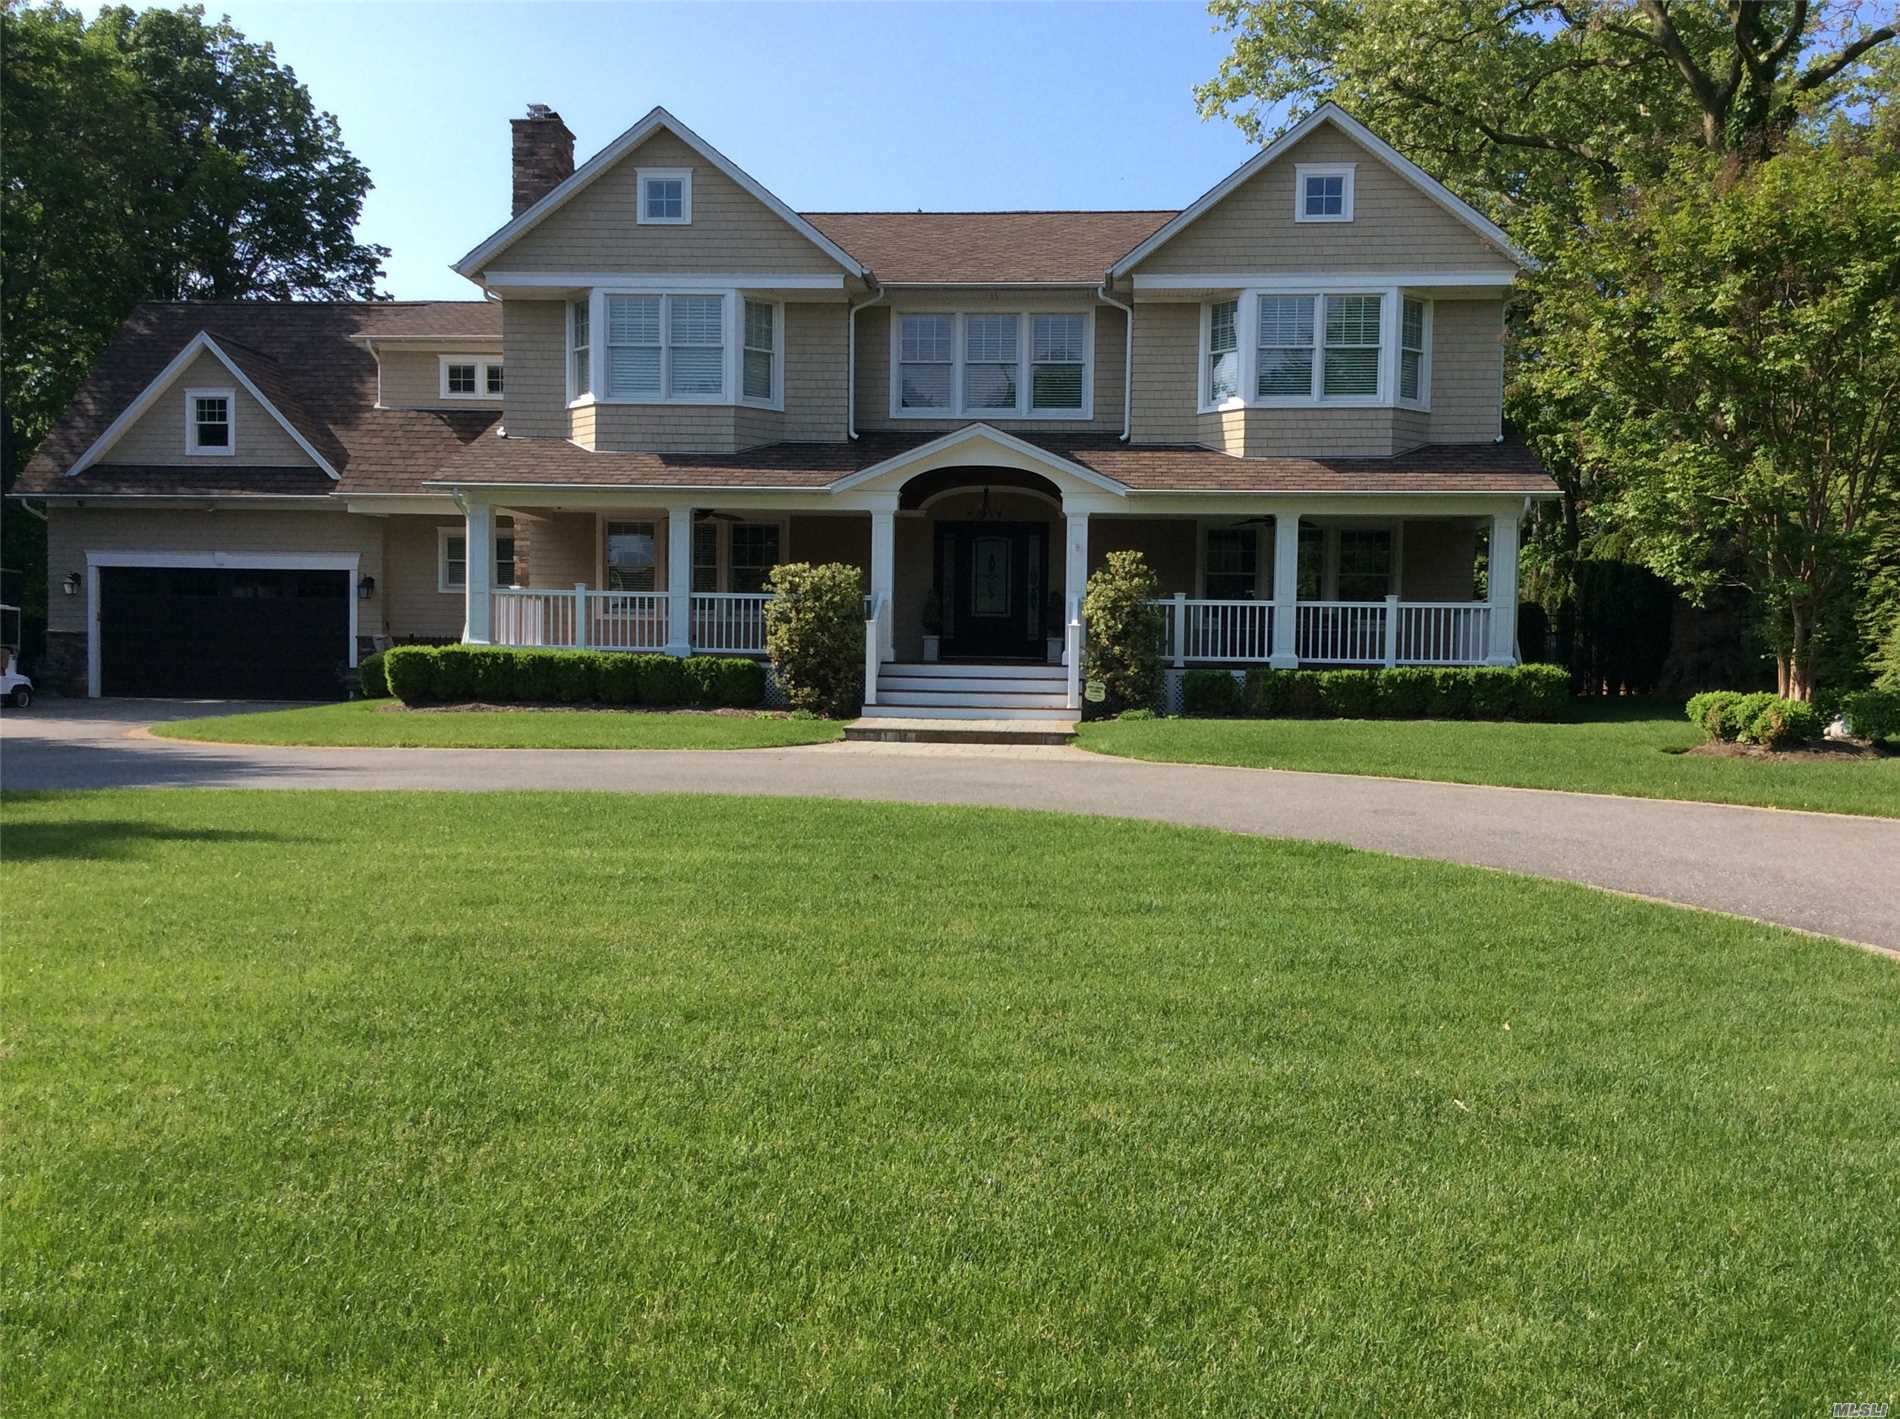 Photo of home for sale at 49 Percy Williams Dr, East Islip NY